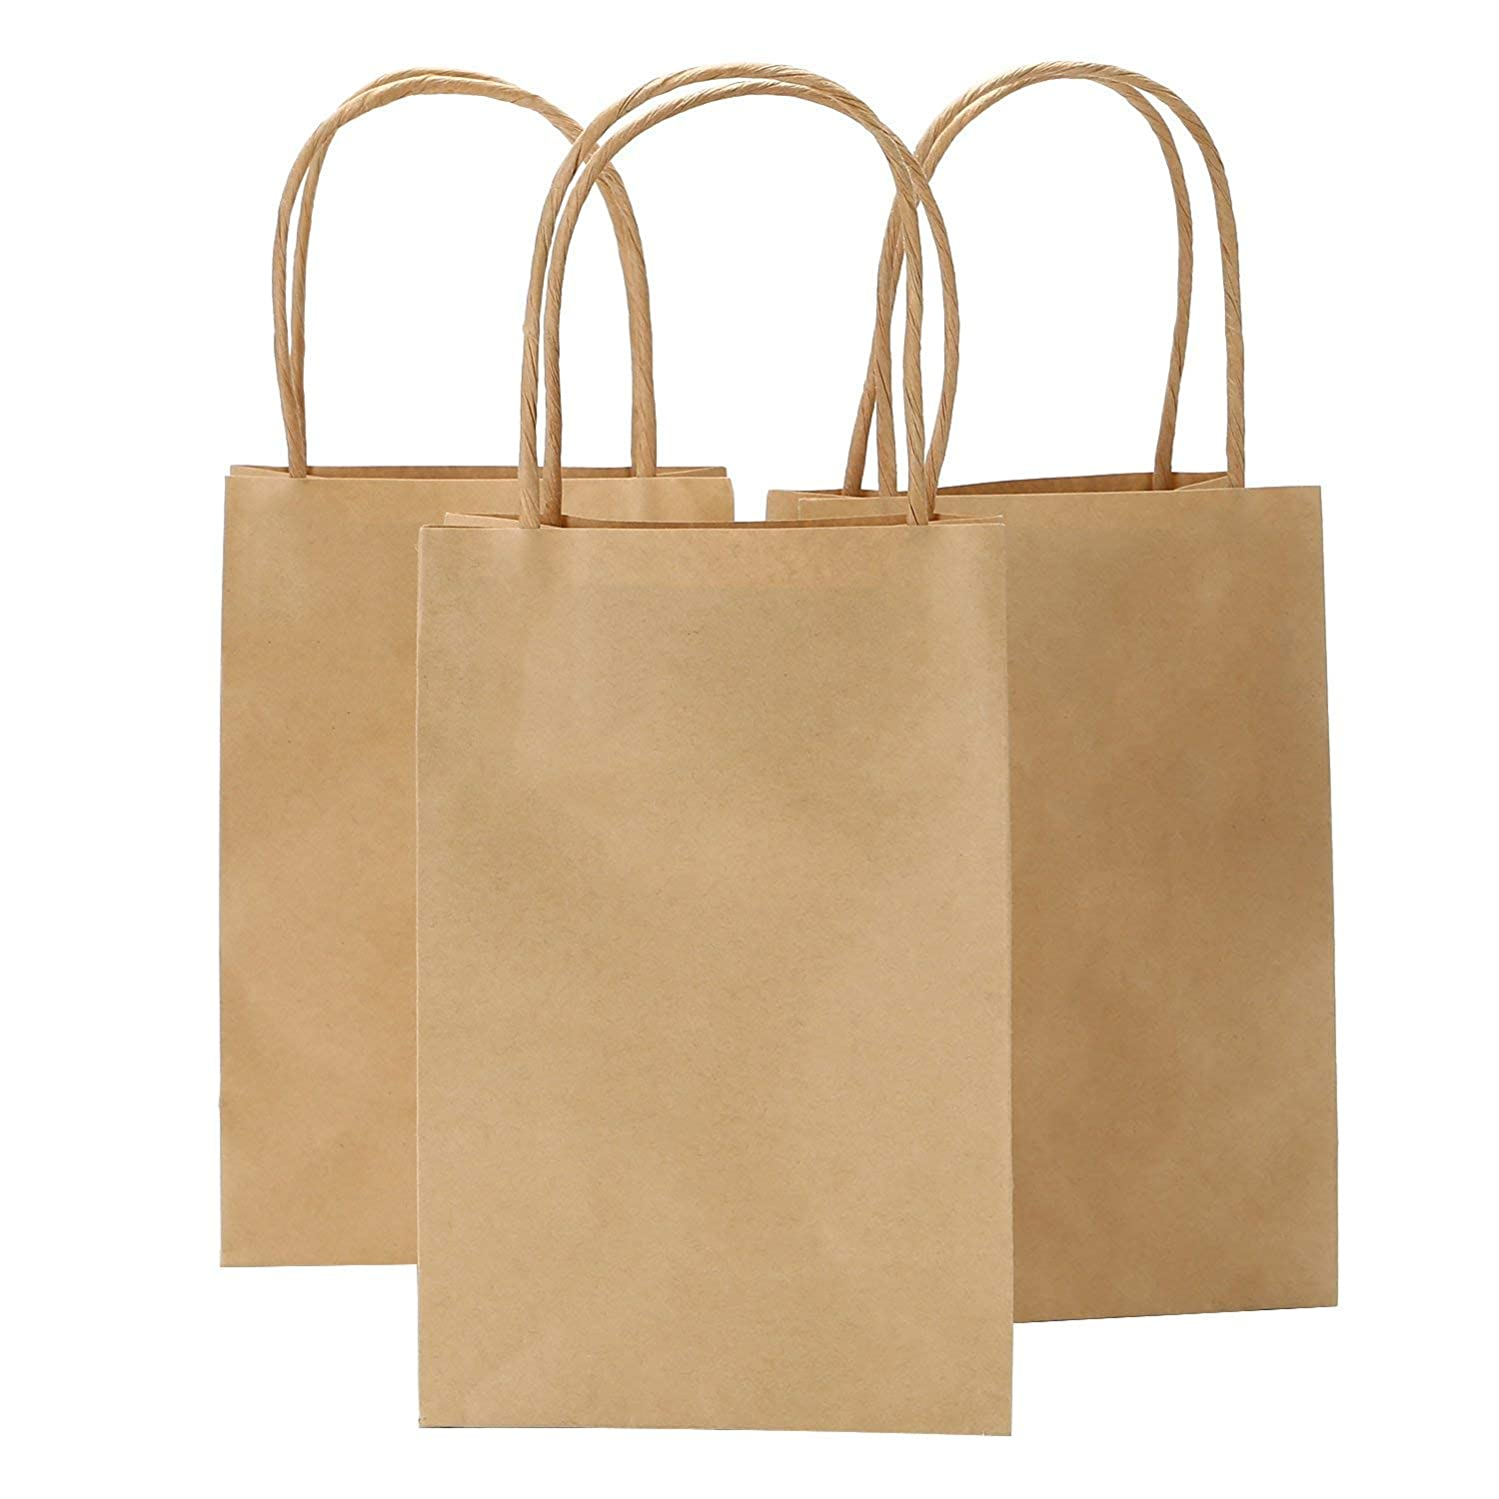 Road 5.25 x 3.75 x 8 Inches Brown Small Kraft Paper Bags with Handles, Shopping, Grocery, Mechandise, Party Bags (200)